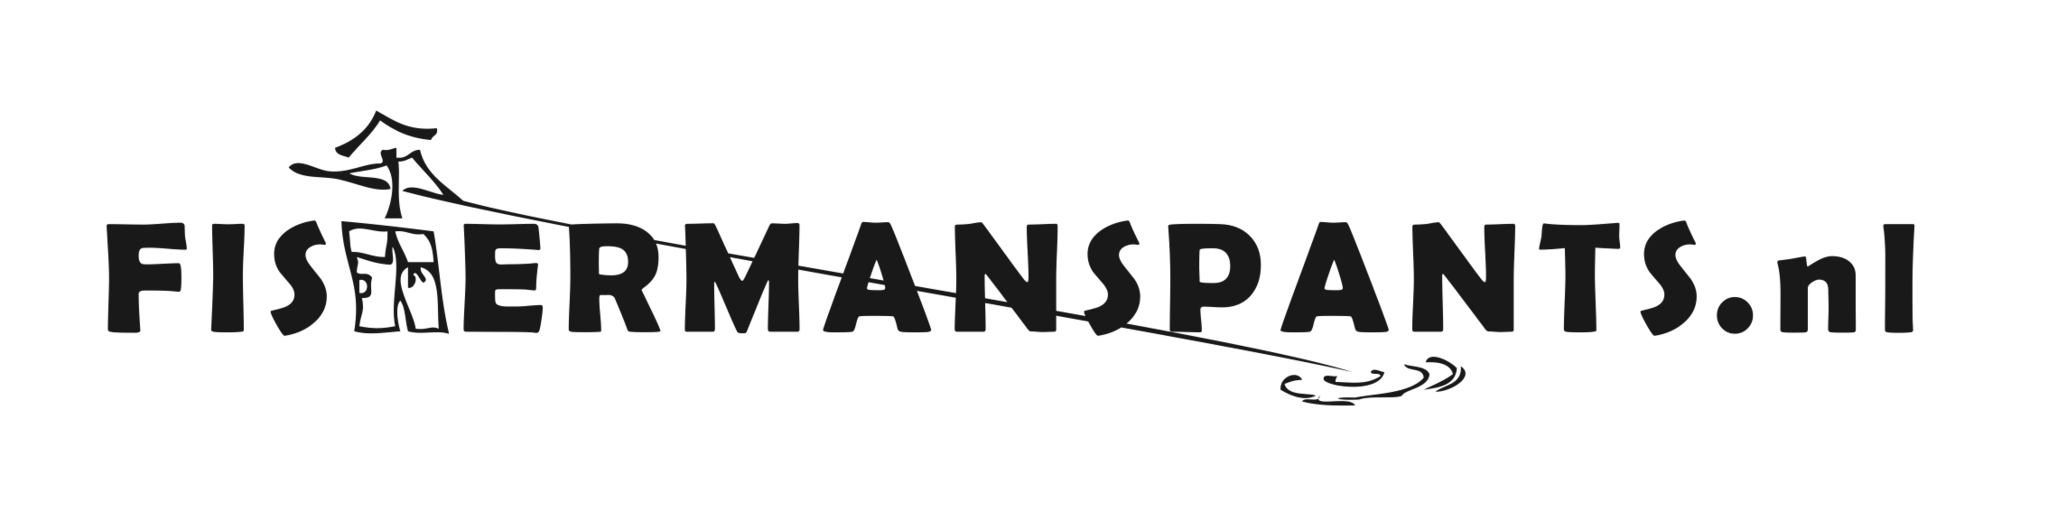 Fishermanspants.nl logo